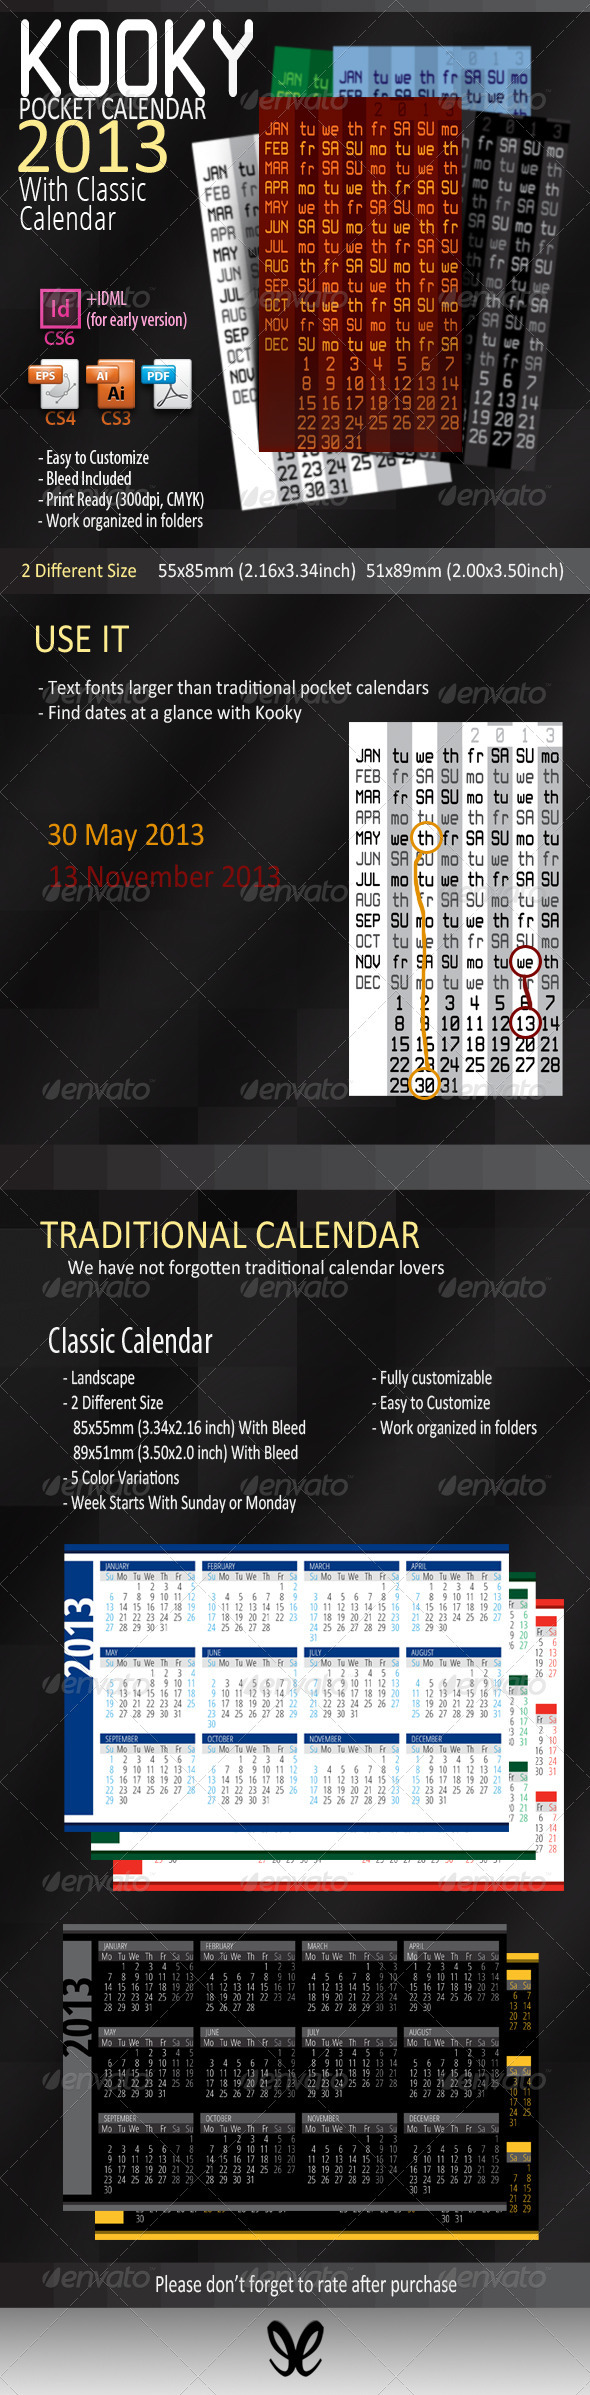 GraphicRiver Kooky&Classic Pocket Calendar 2013 3312747